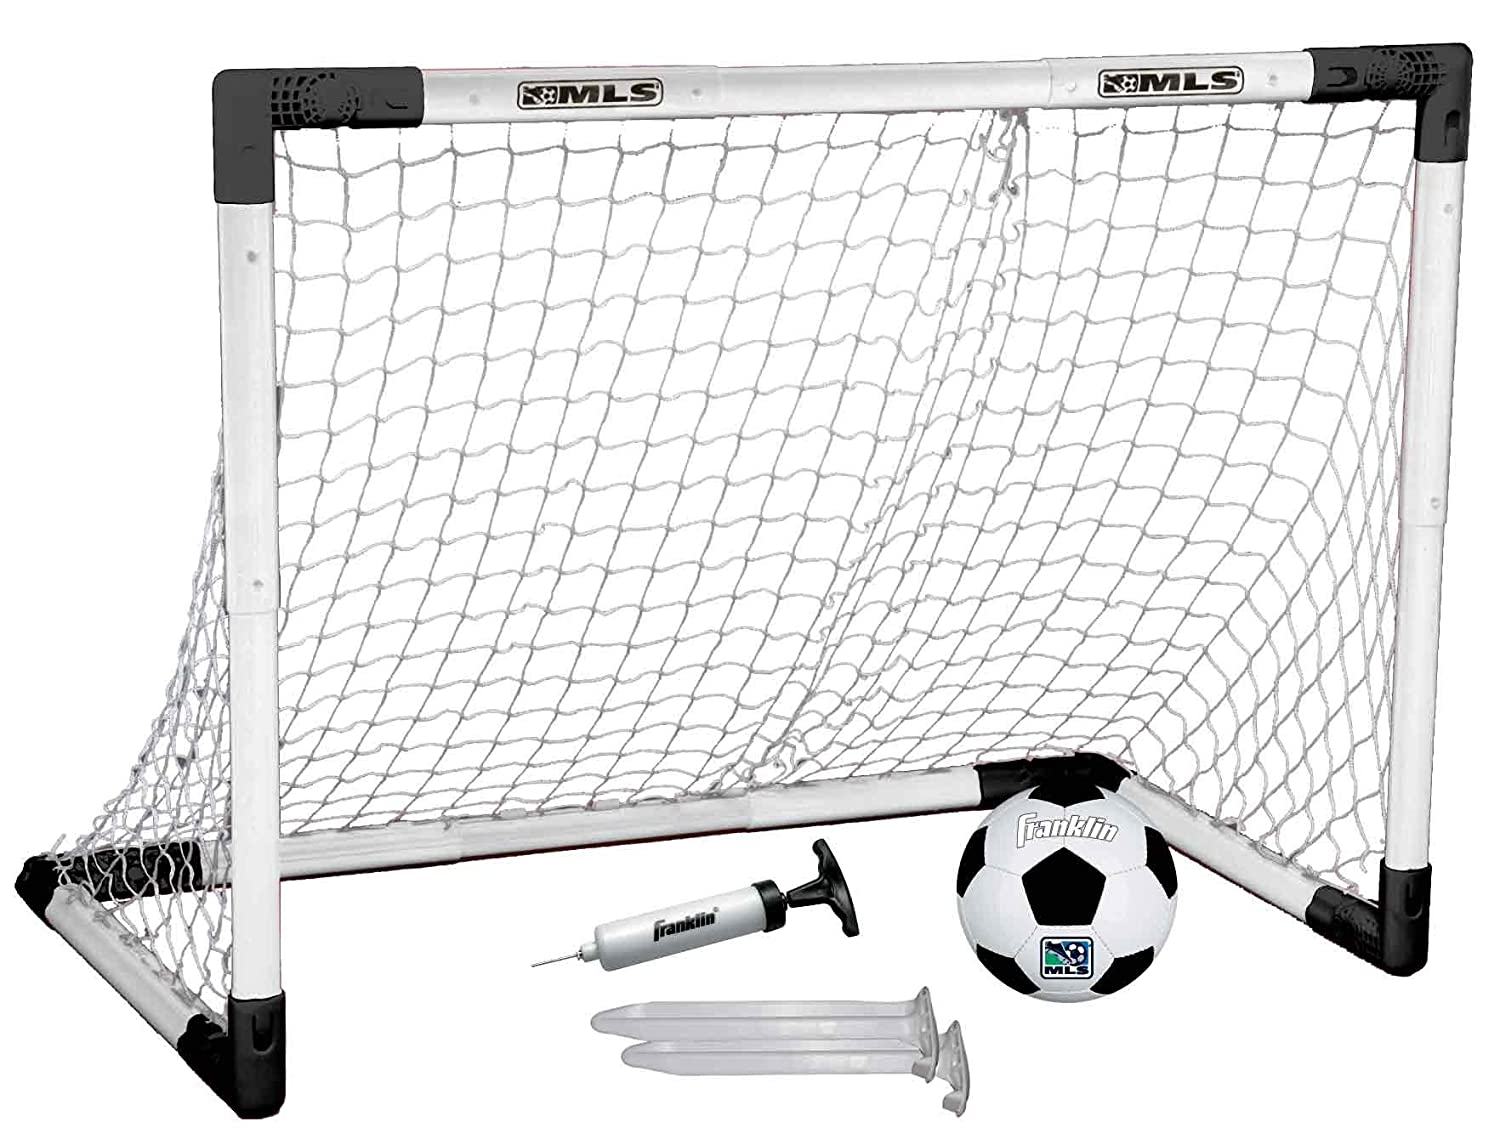 b3666806737 Amazon.com   Franklin Sports MLS Insta-Set Soccer Goal and Ball Set   Soccer  Nets For Kids   Sports   Outdoors